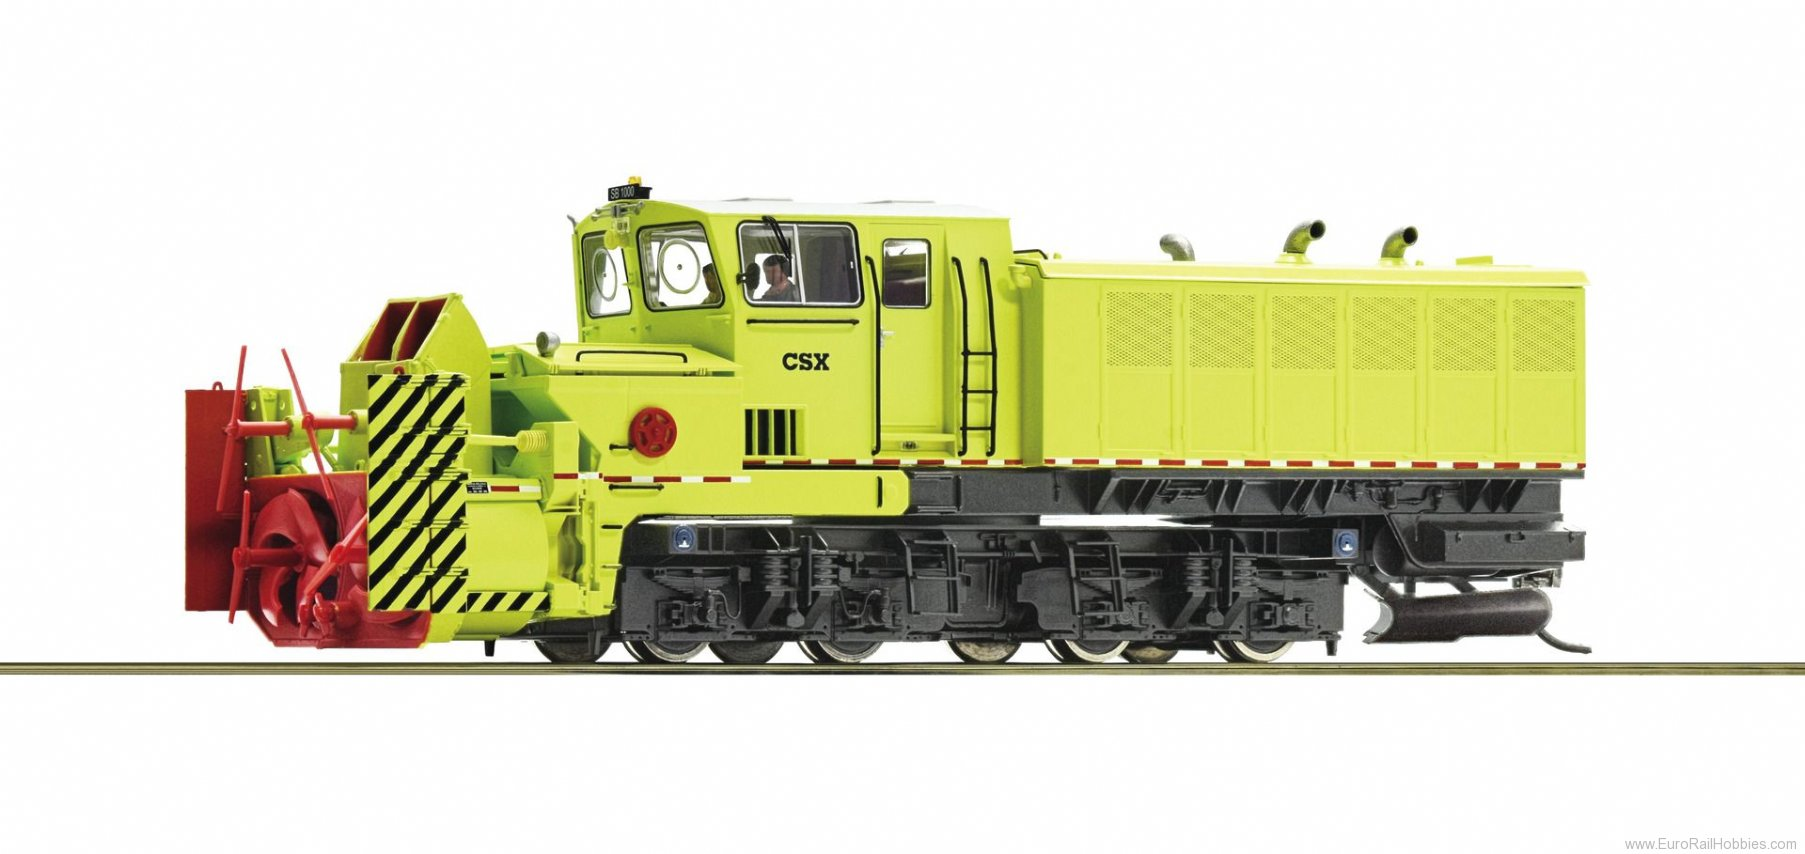 Roco 72803 Beilhack rotary snow blower, CSX (DCC w/Sound